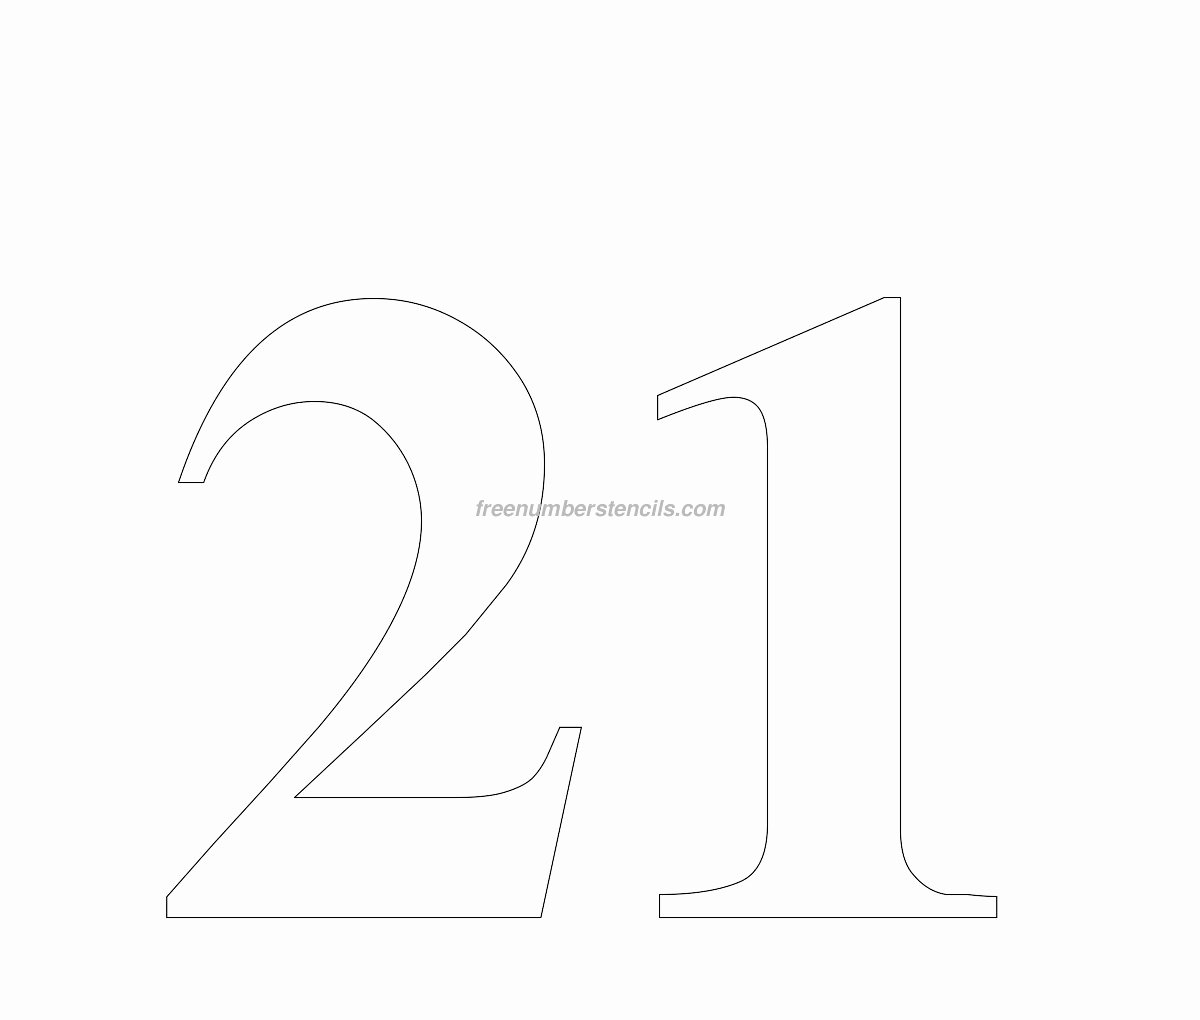 Number Templates to Cut Out Elegant Free Huge 21 Number Stencil Freenumberstencils